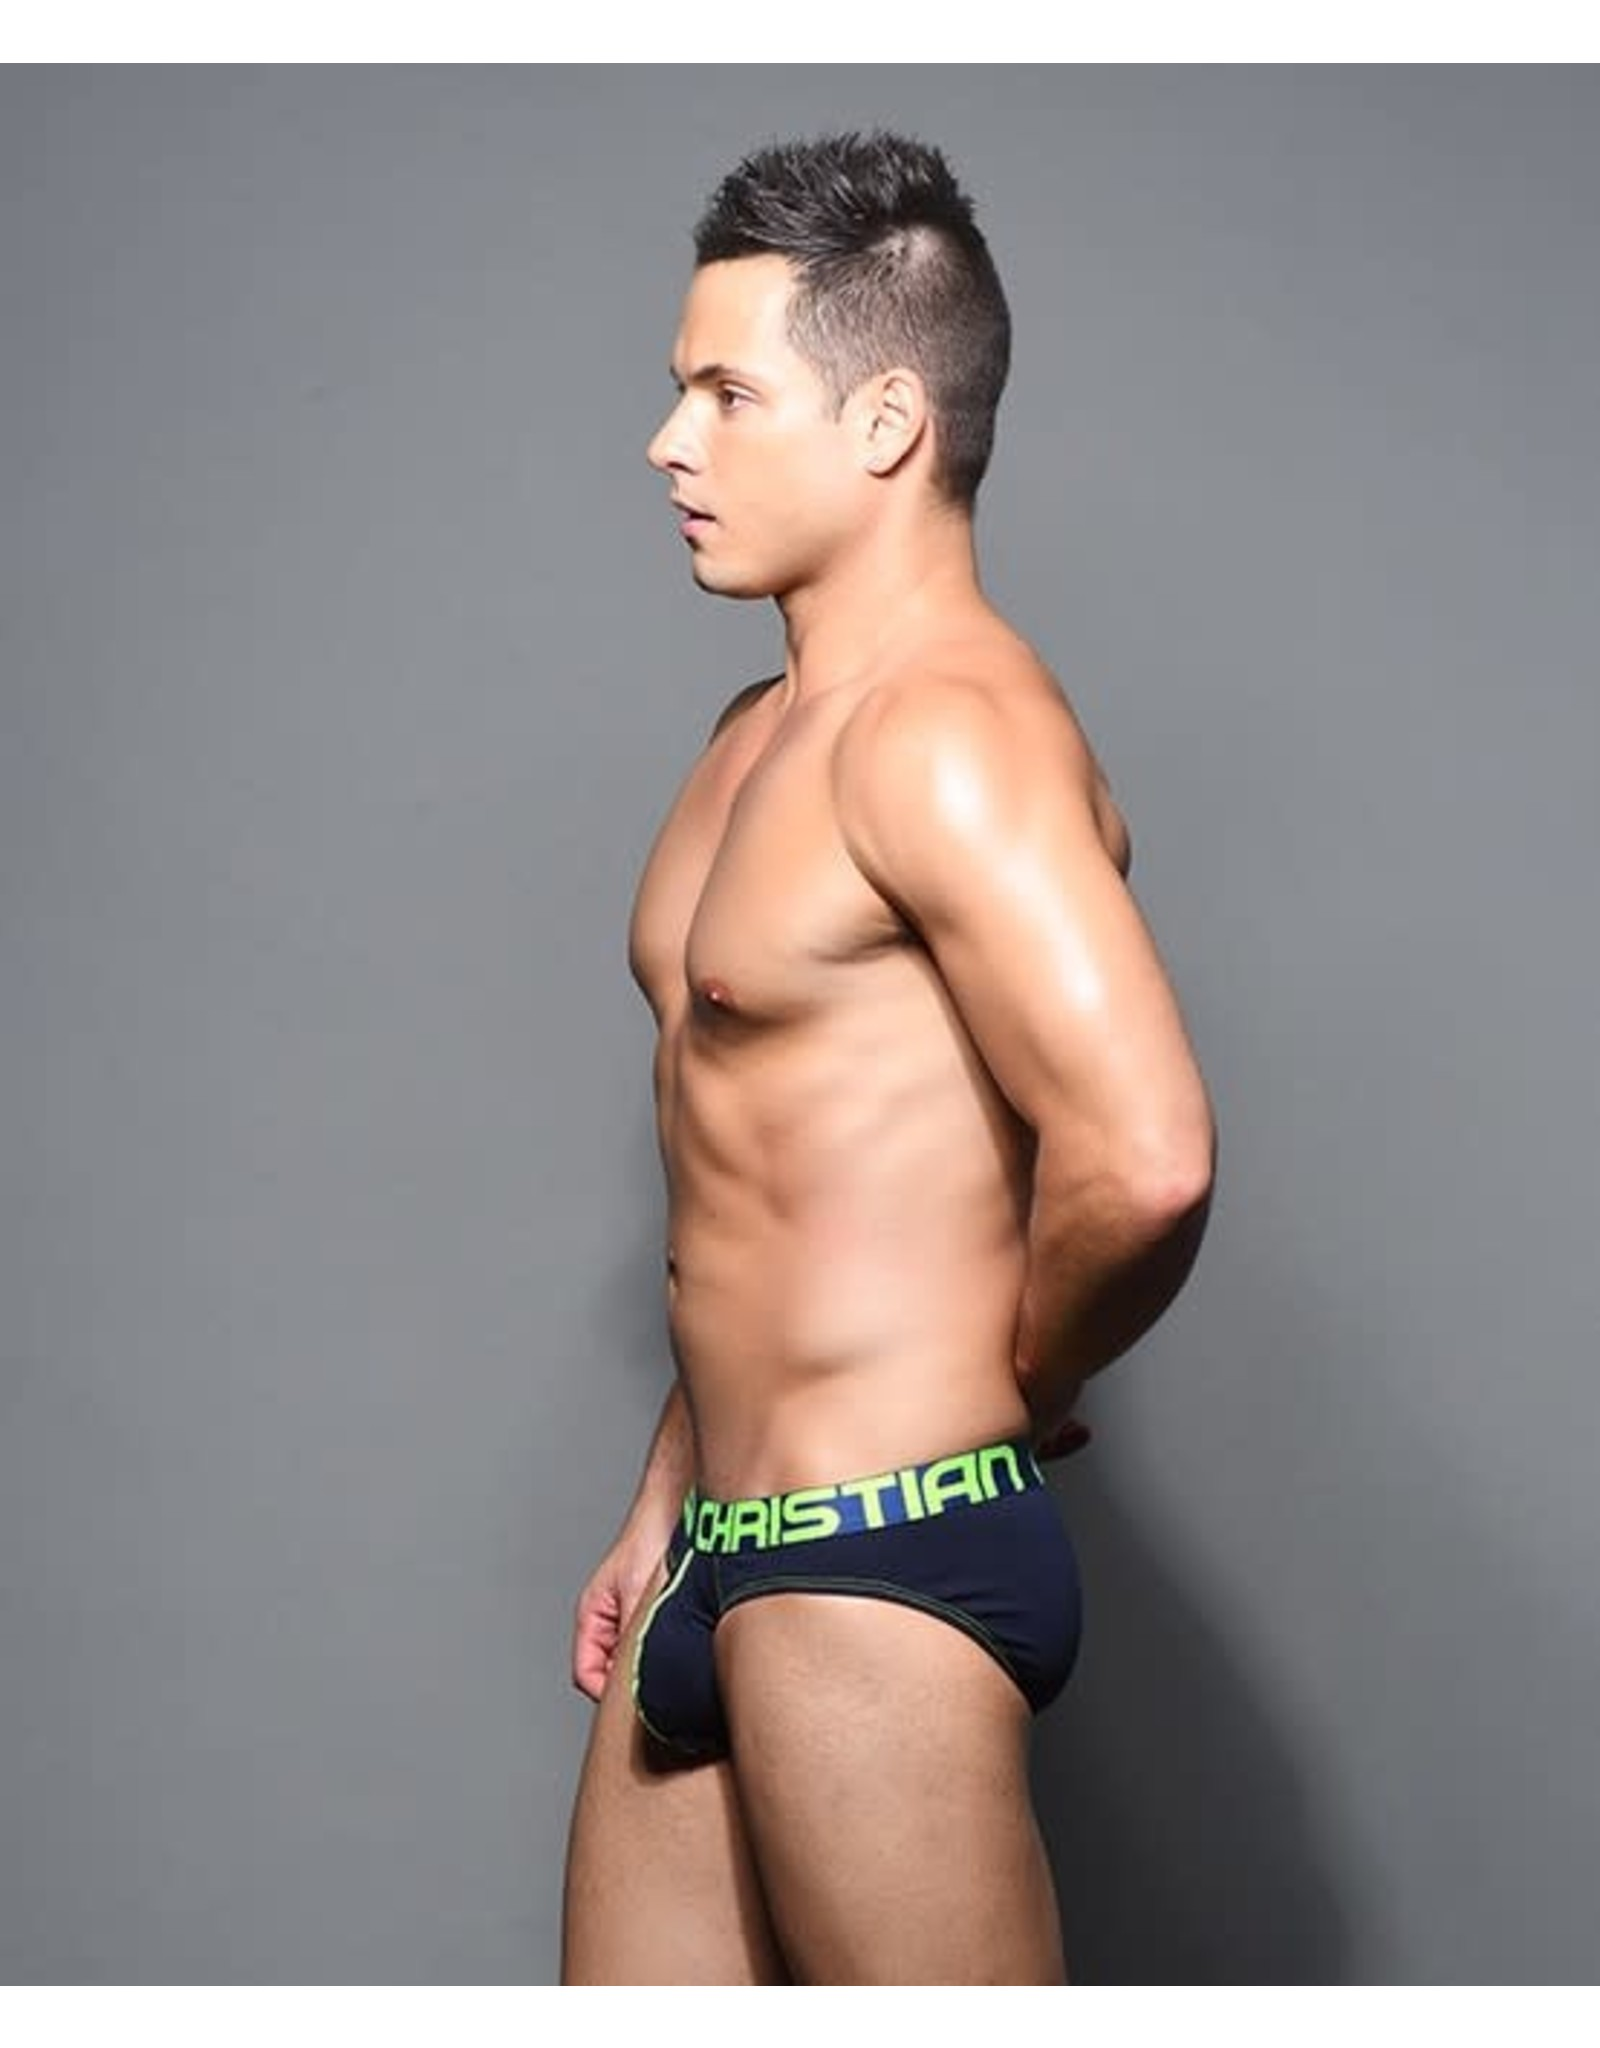 ANDREW CHRISTIAN ANDREW CHRISTIAN HAPPY BRIEF W/ ALMOST NAKED